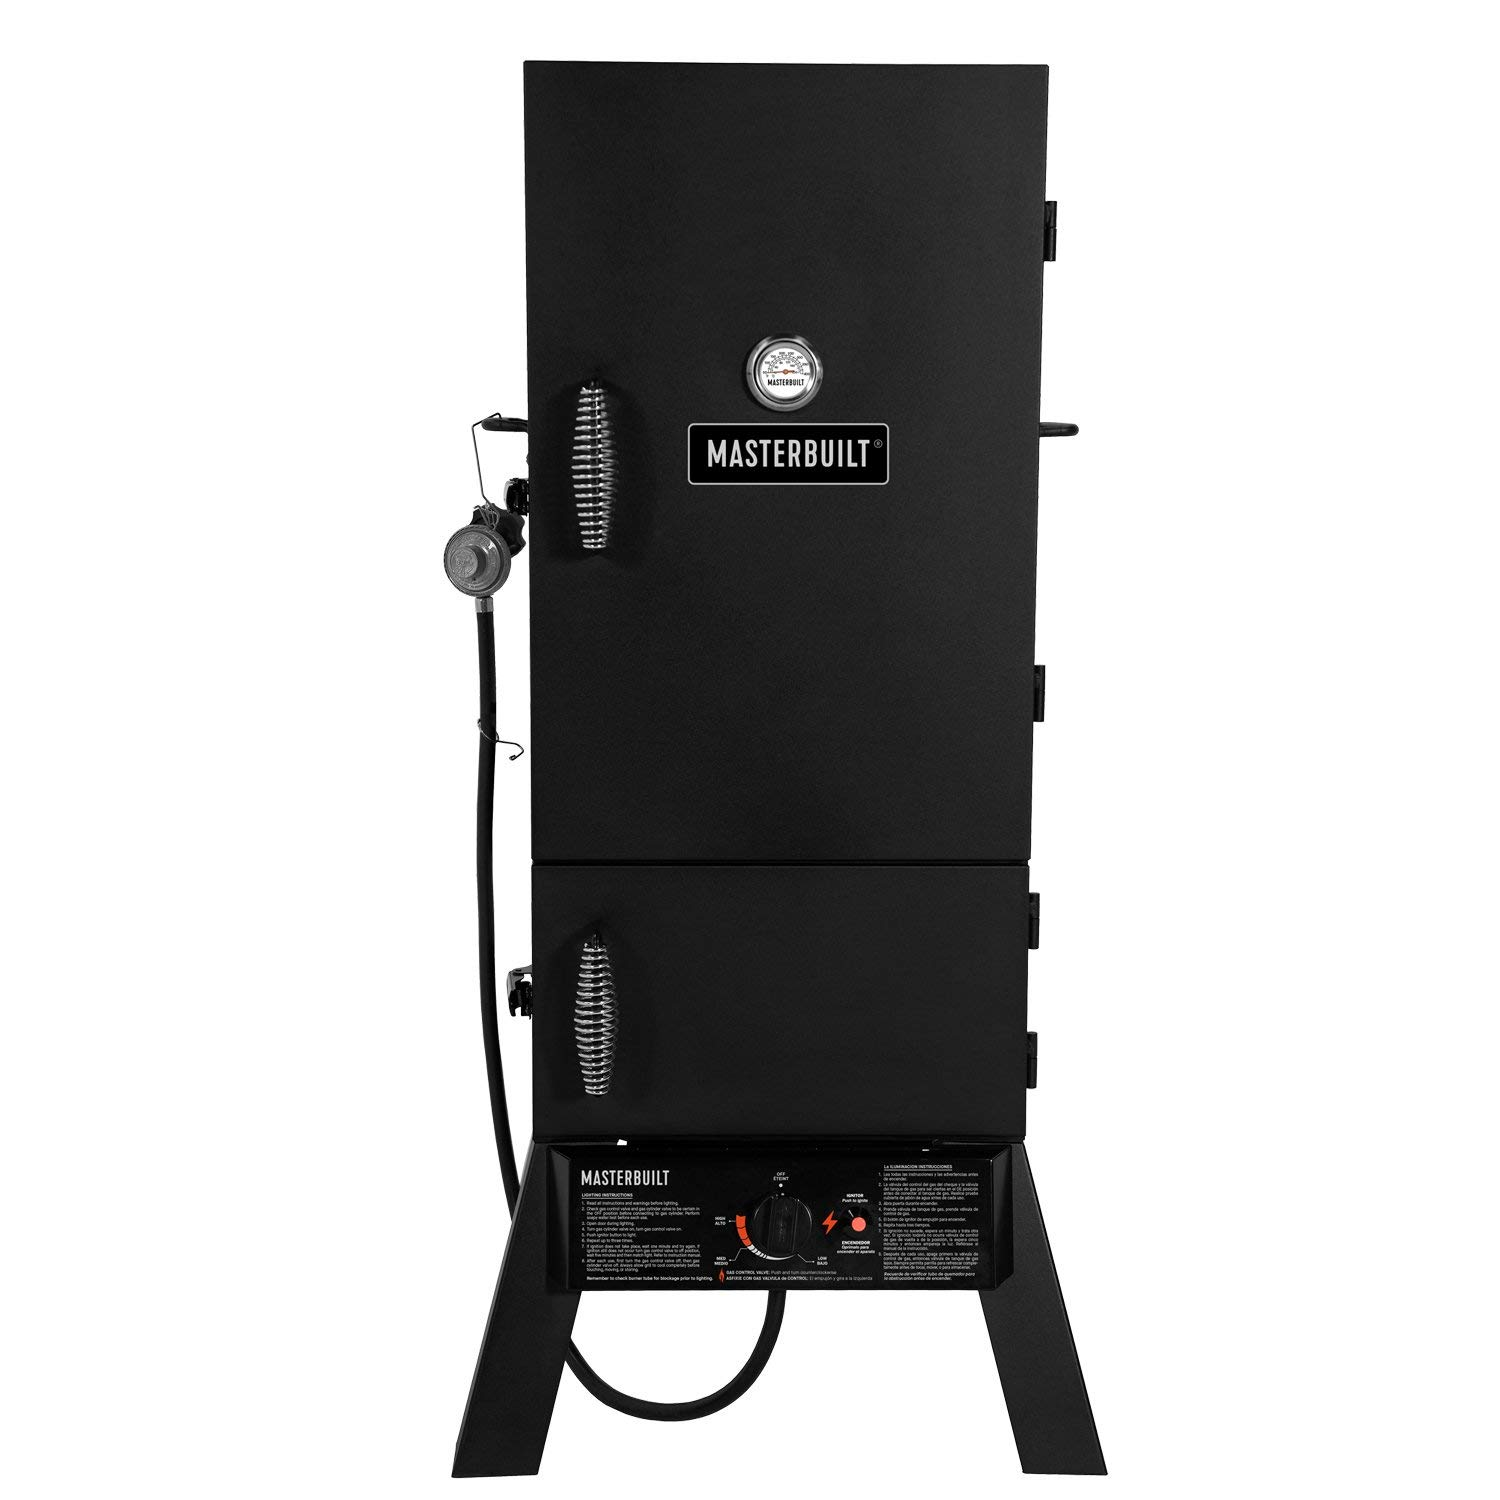 Masterbuilt MB20052318 Propane Smoker 230S Review